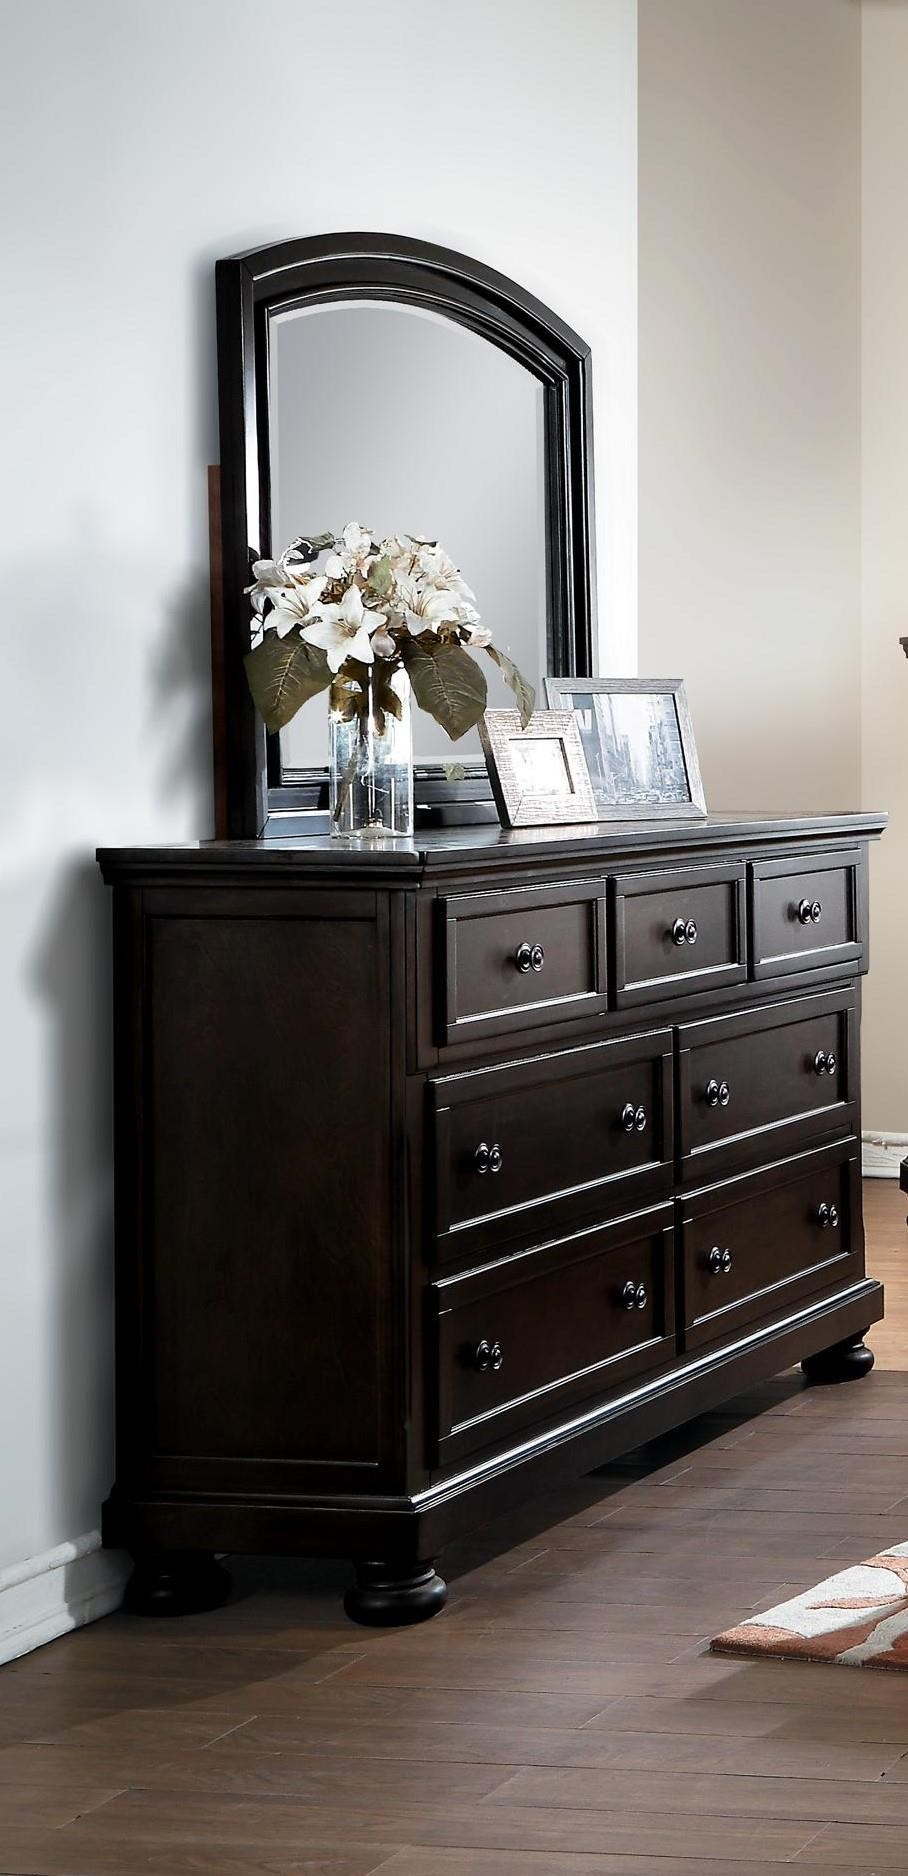 Begonia Begonia Dresser and Mirror Set by Homelegance at Dream Home Interiors